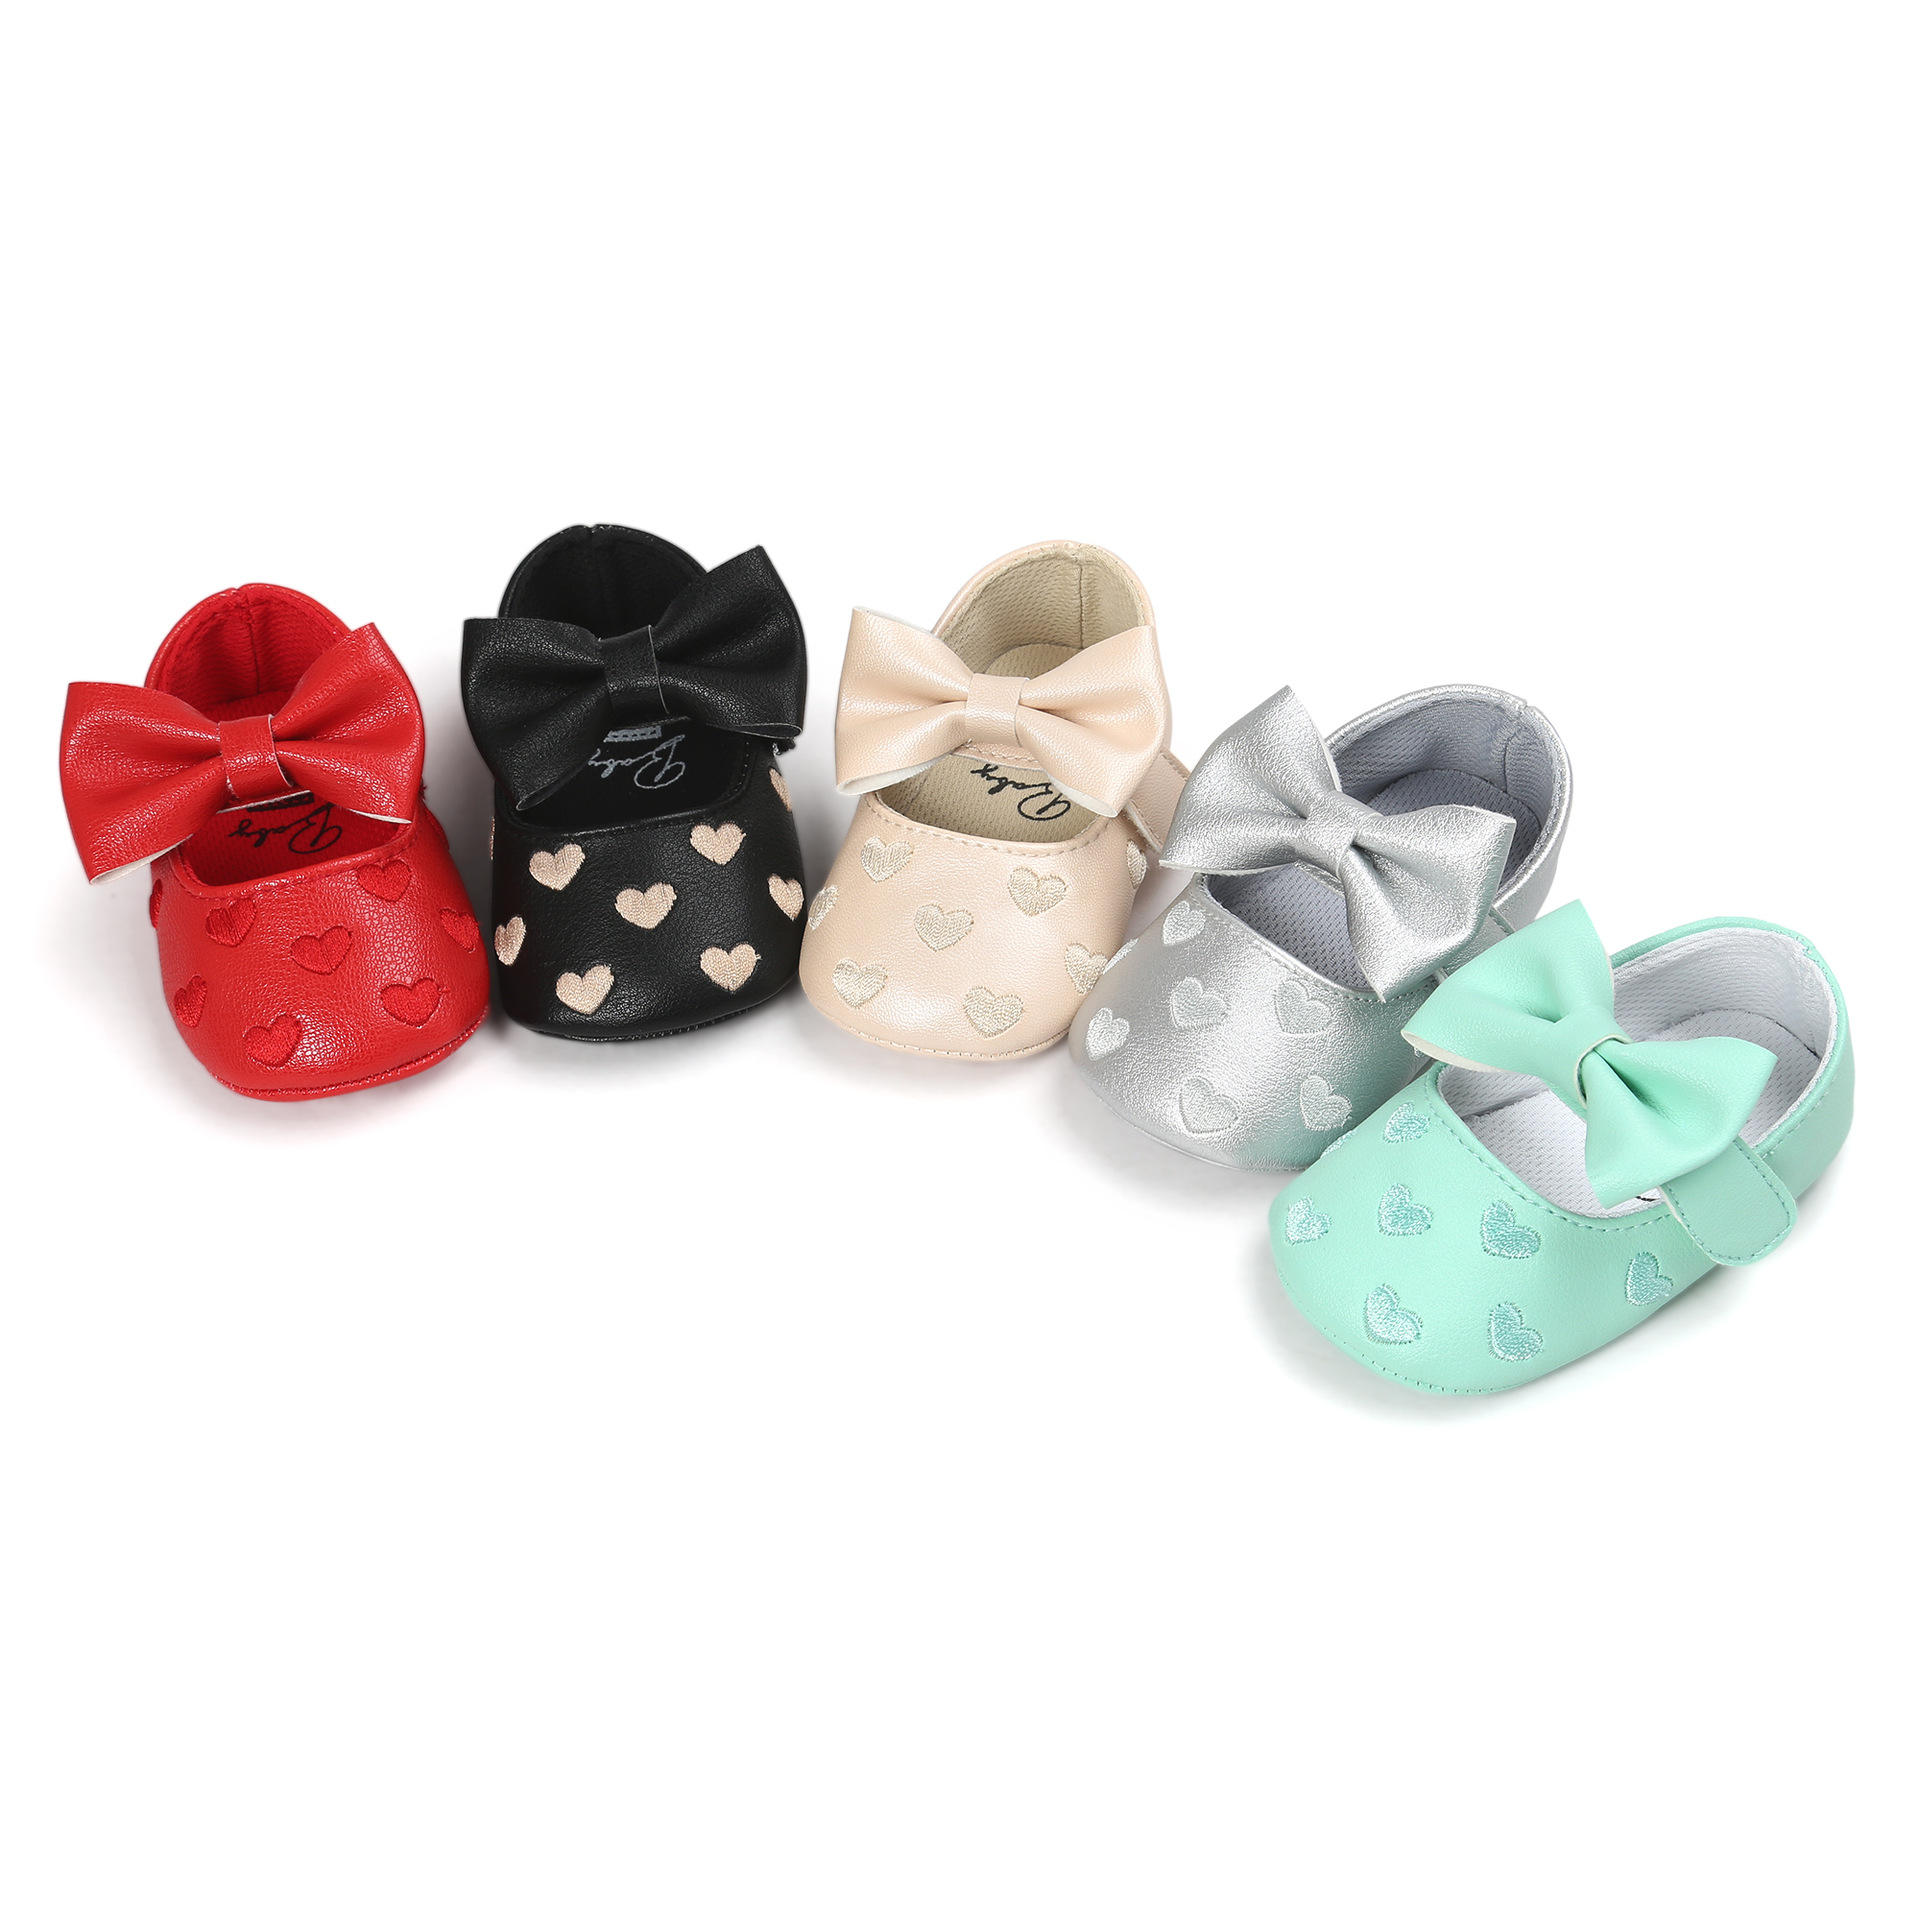 Child Toddler Shoes Baby Girl Shoes First Walkers Lovely Princess Non slip Infant Soft Newborn antiskid baby shoes M0352